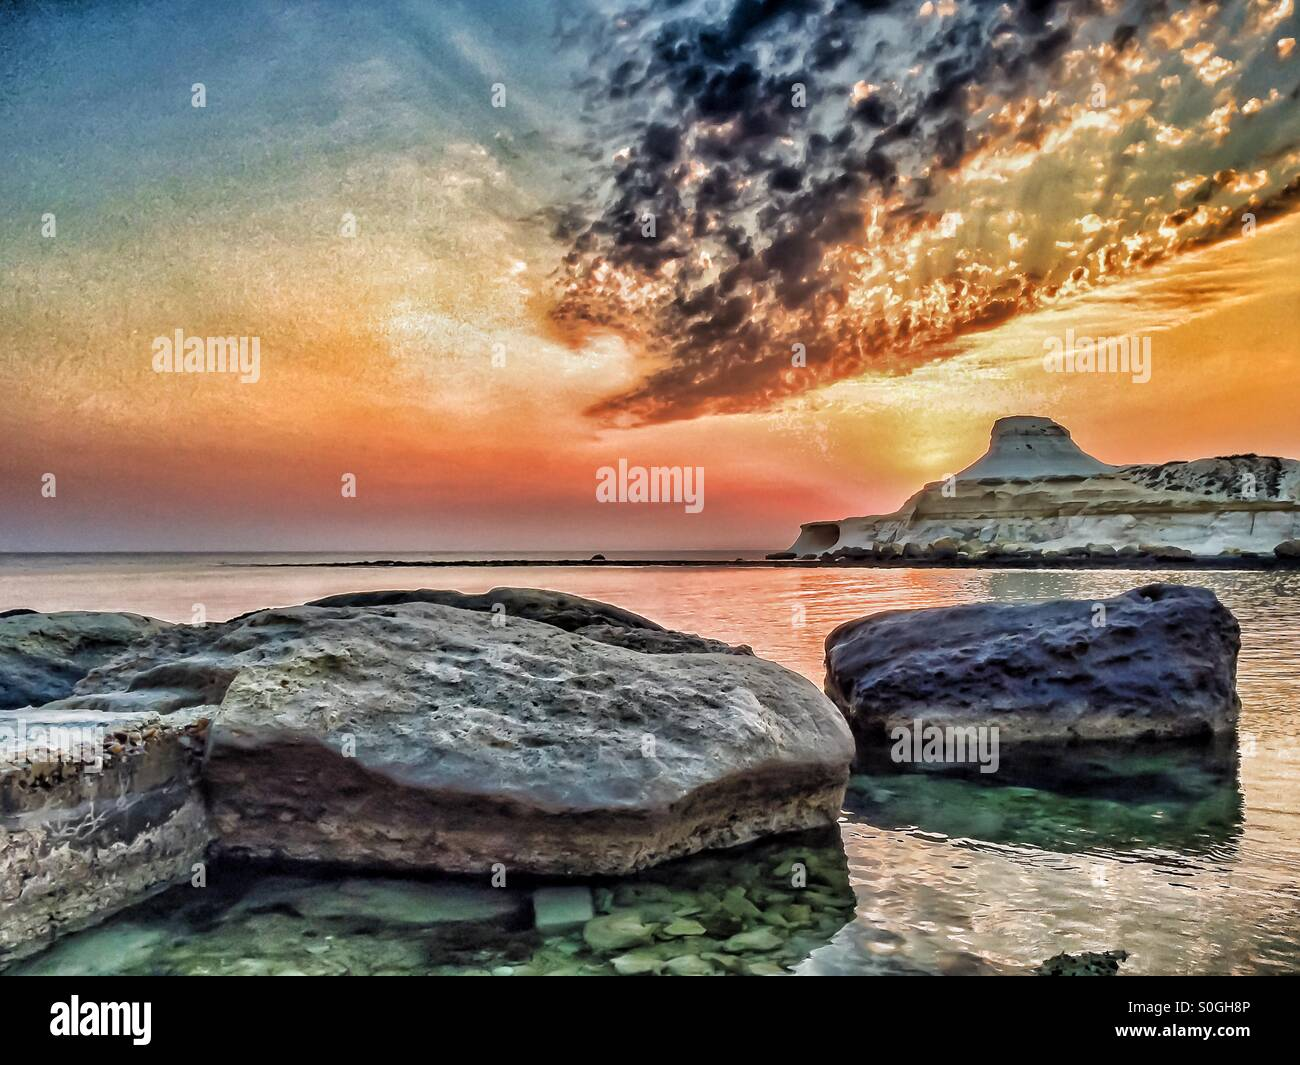 Dramatic sunrise over calm bay with rocks in the foreground - Stock Image